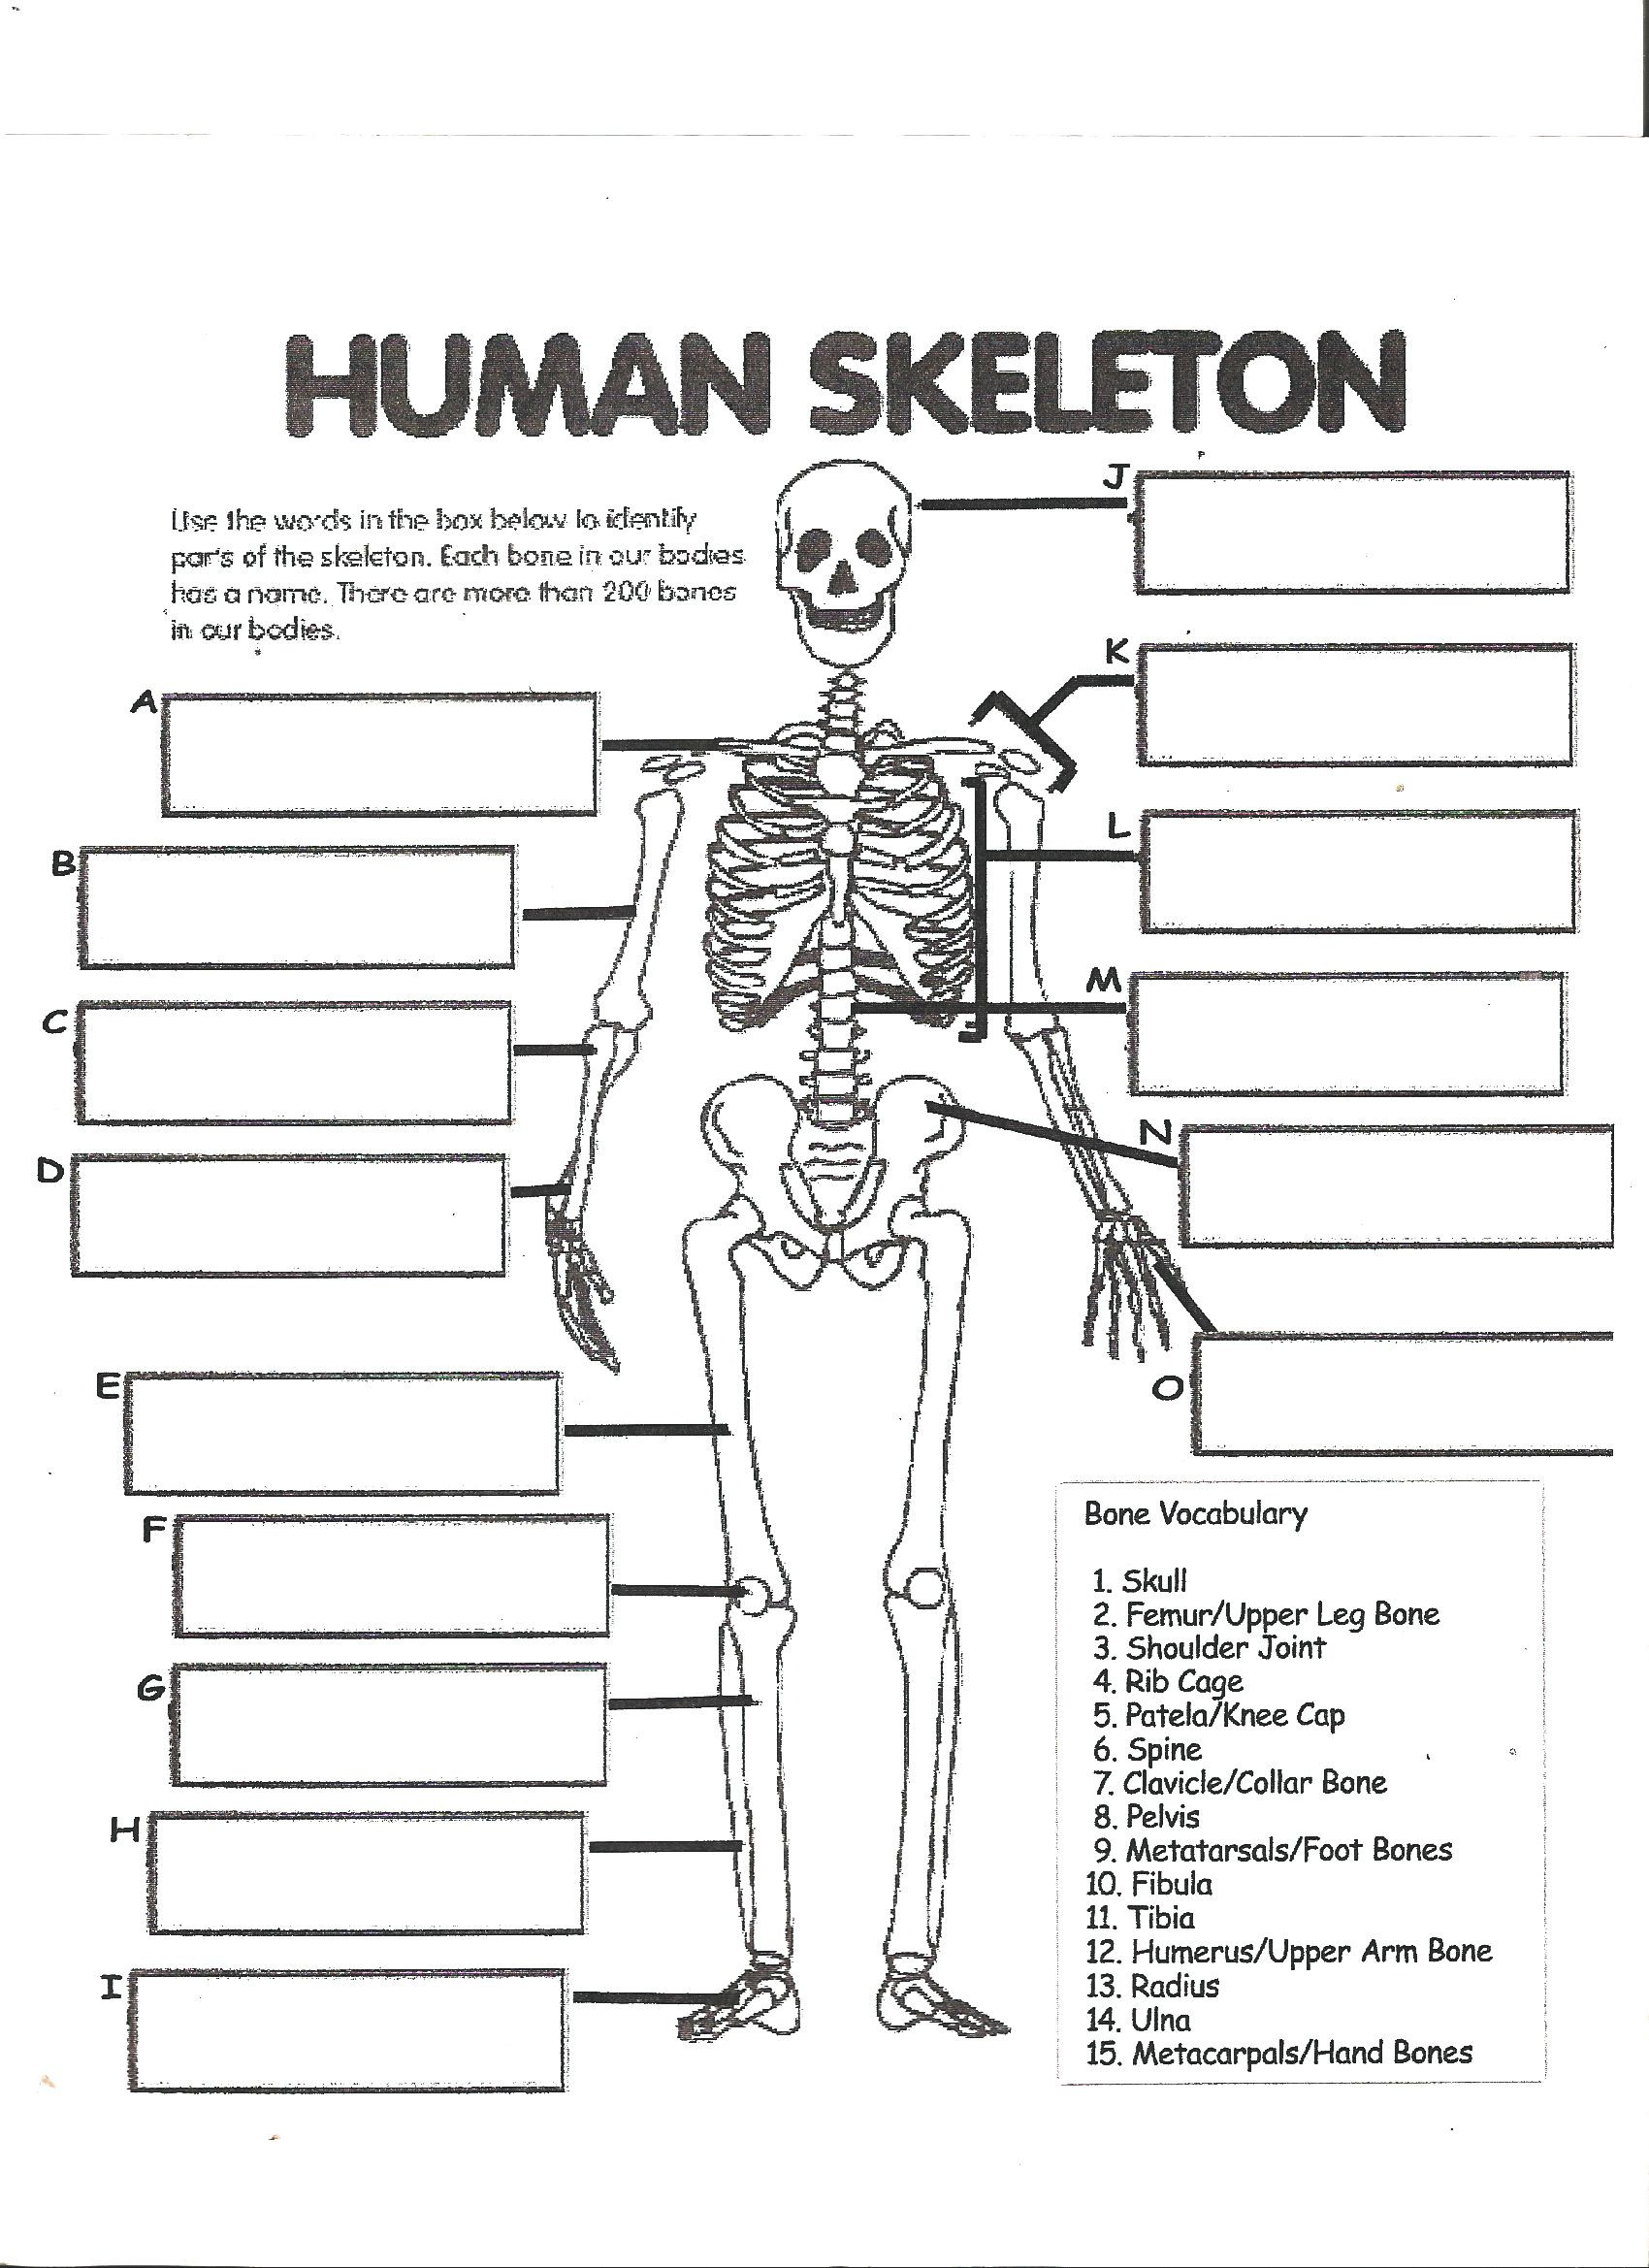 Printable Anatomy Labeling Worksheets Digestive System Labeling Worksheet Answers Human Skeleton